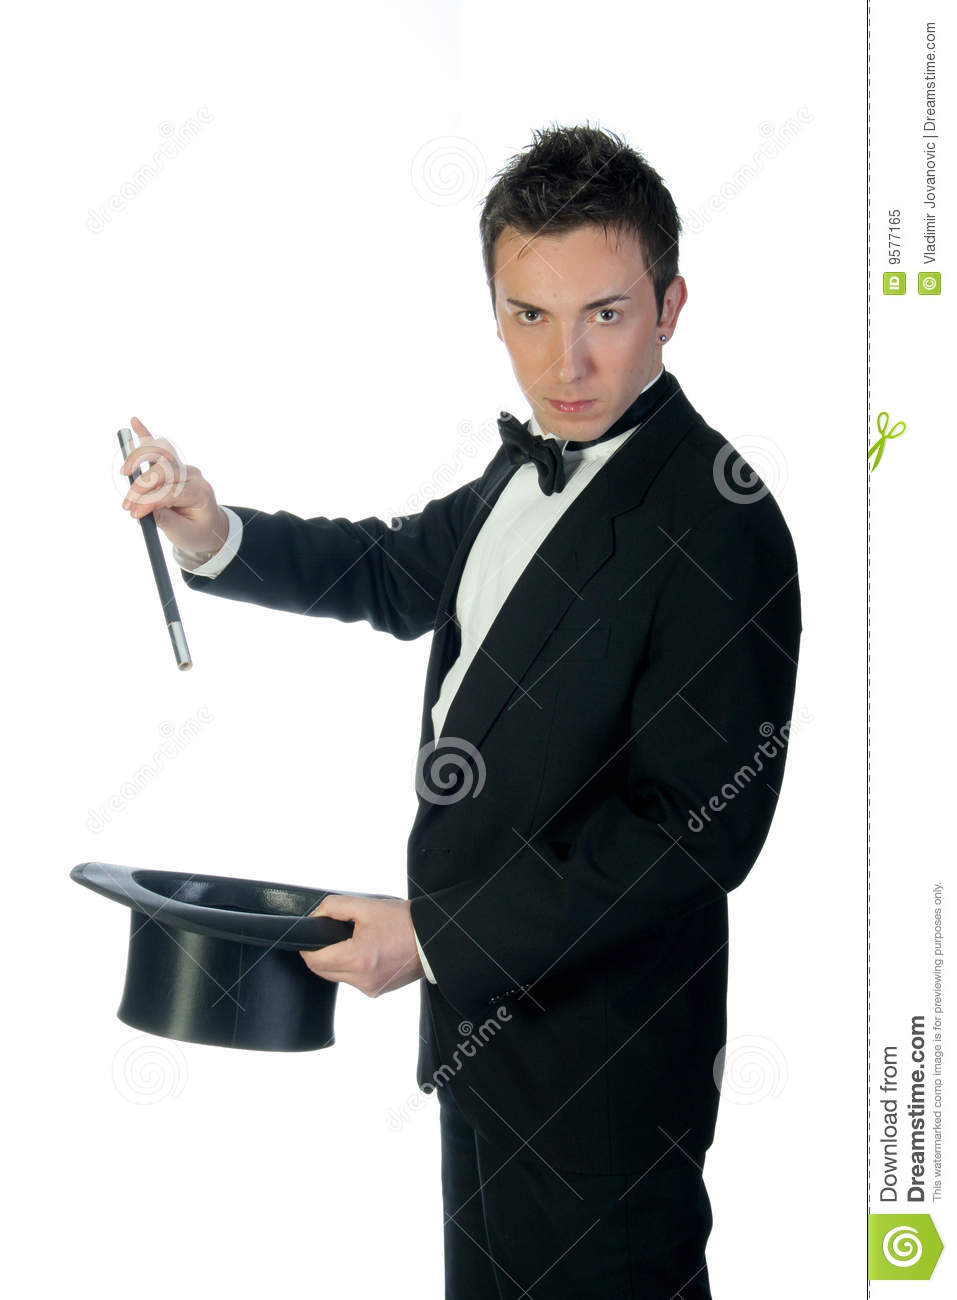 Magician From The Crystal Visions Tarot: Magician With Wand And Hat Stock Image. Image Of